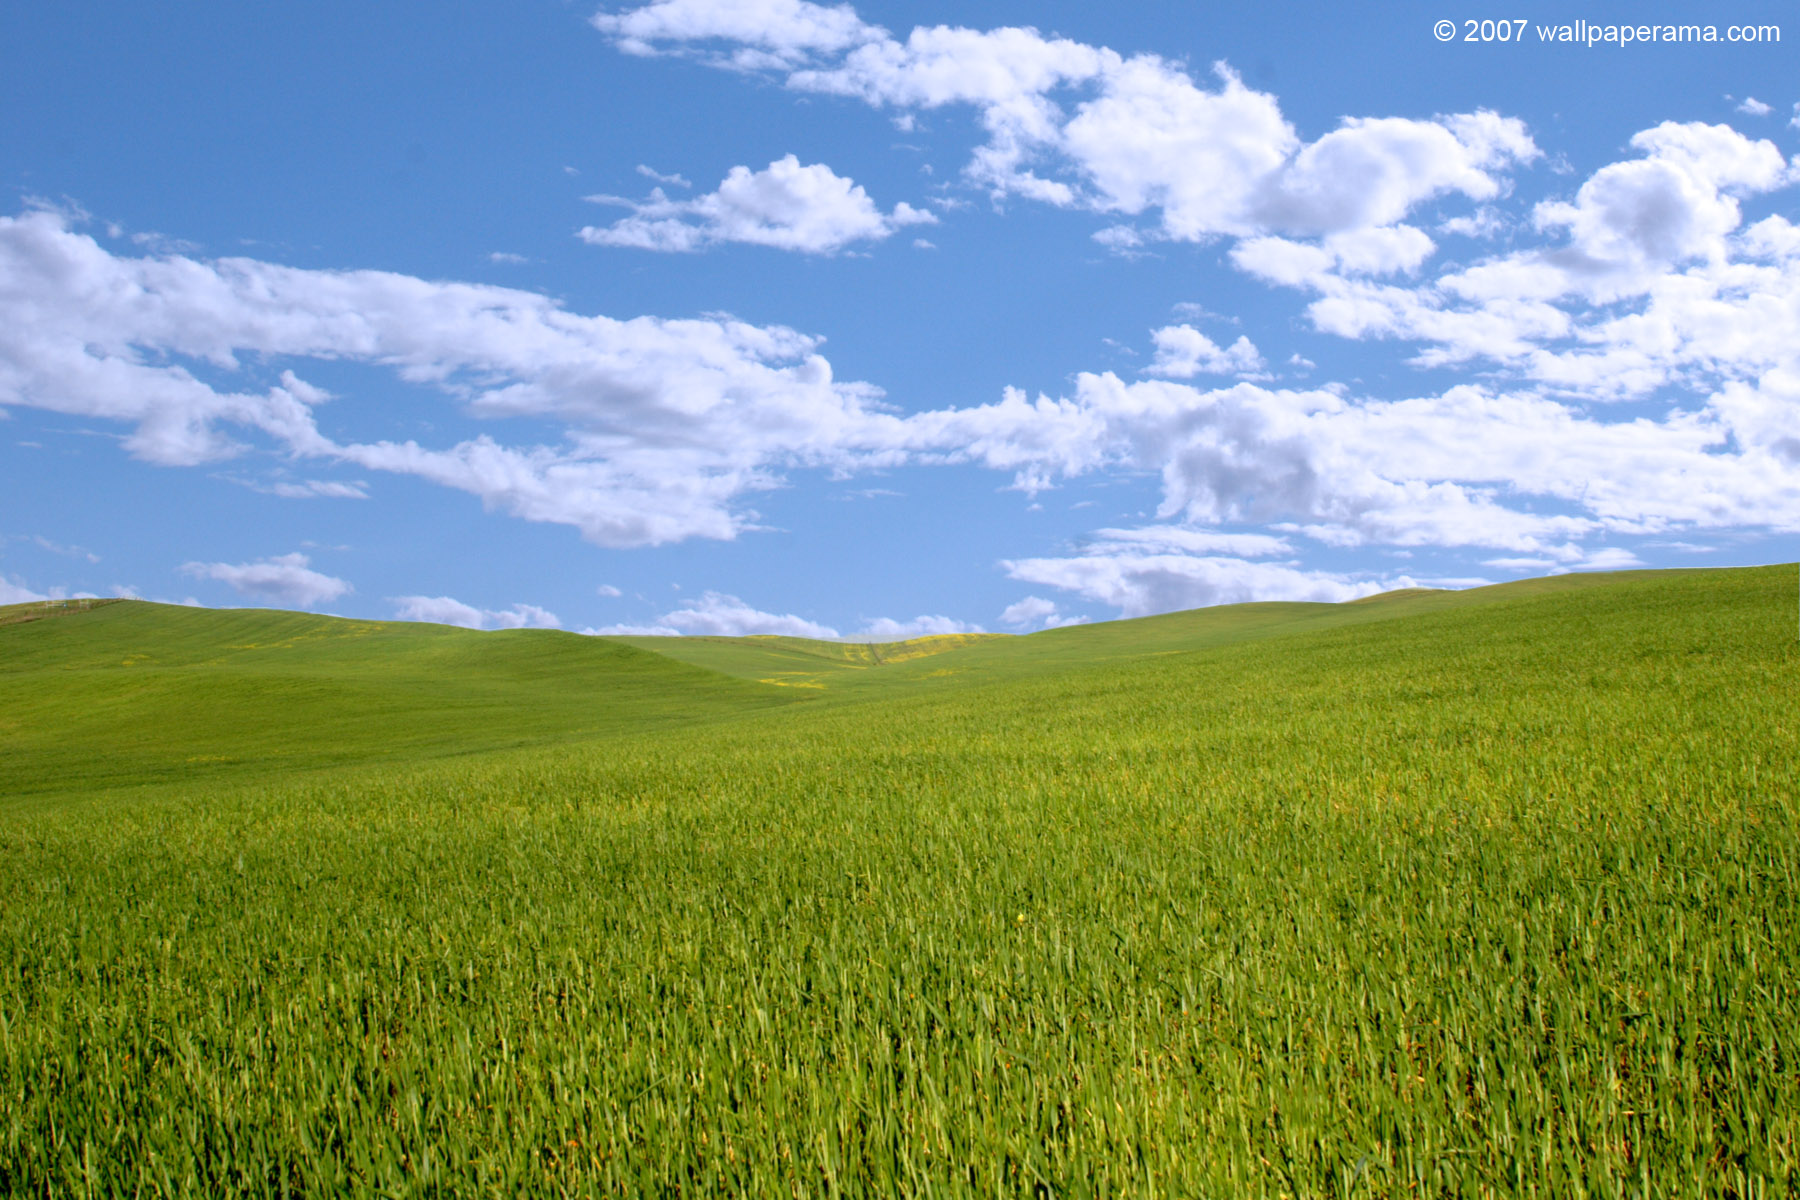 Windows Xp Wallpaper Free HD Backgrounds Images Pictures